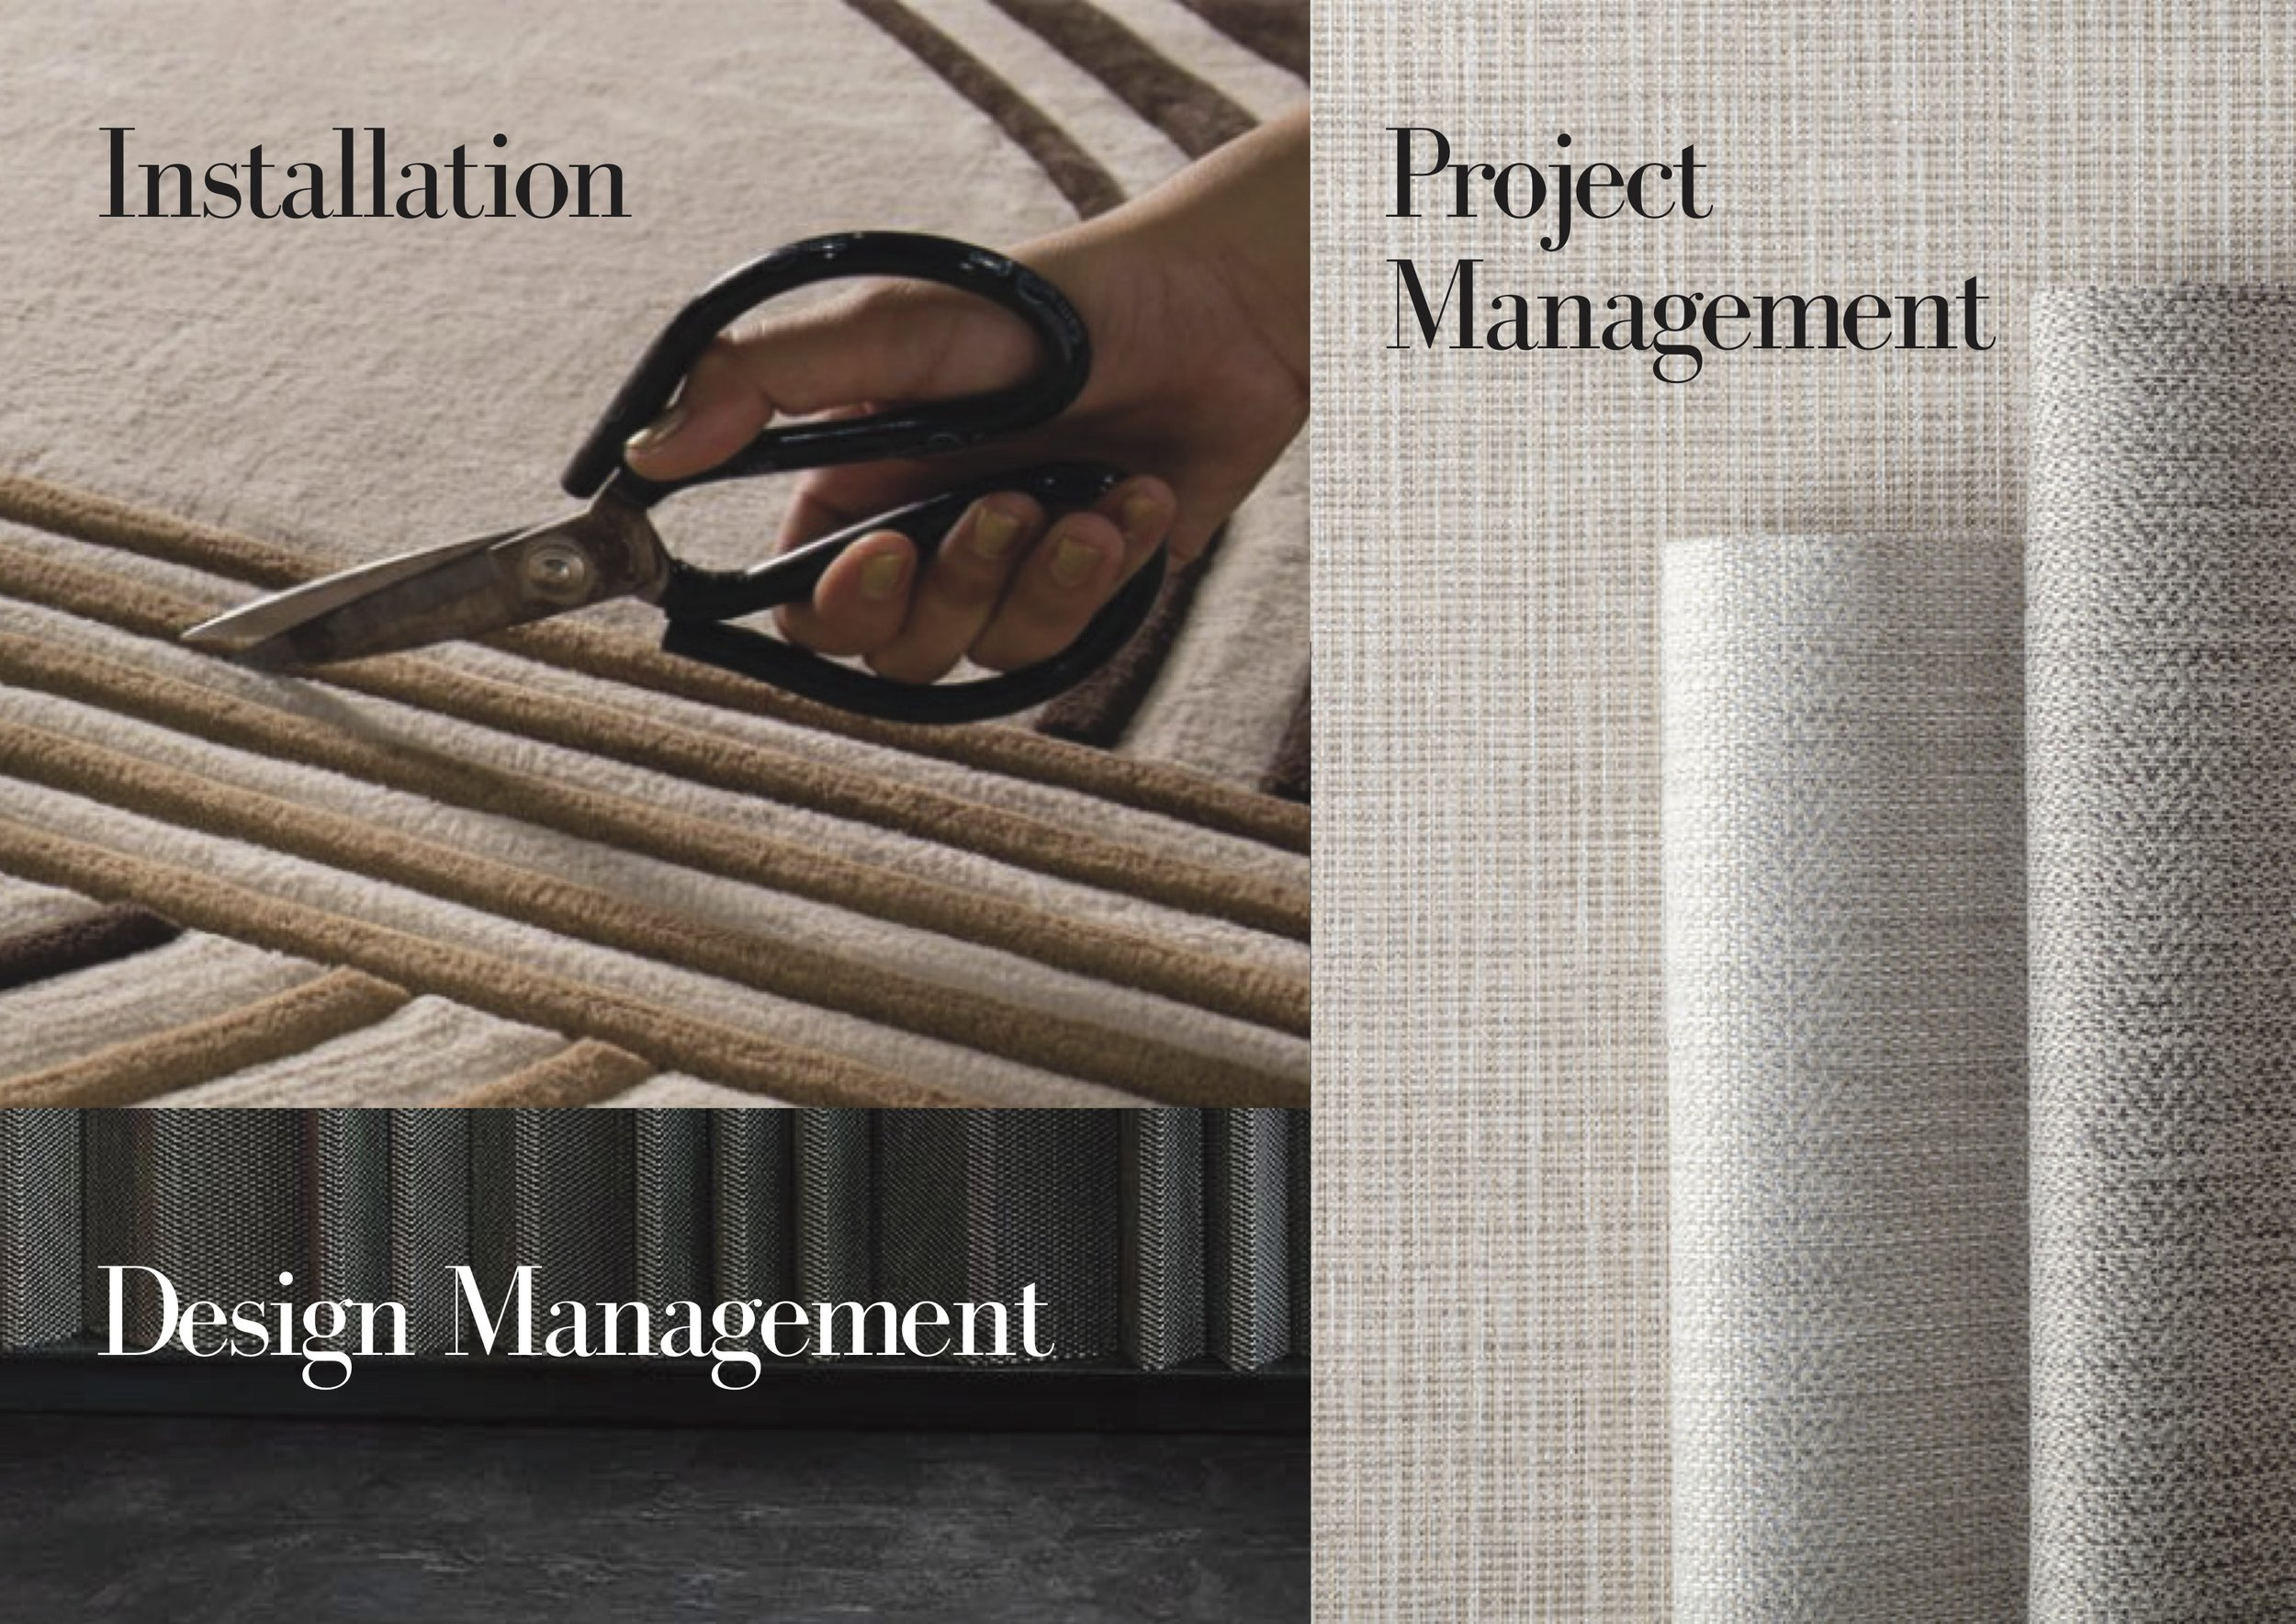 We coordinate and manage the design development, including cost estimation, design presentation, detailing, drawings and documentations till construction stage with our specialist to resdiential, commercial, office, healthcare or hospitality spaces for our clients. Bringing innovation, creativity and professionalism to our clients' needs.